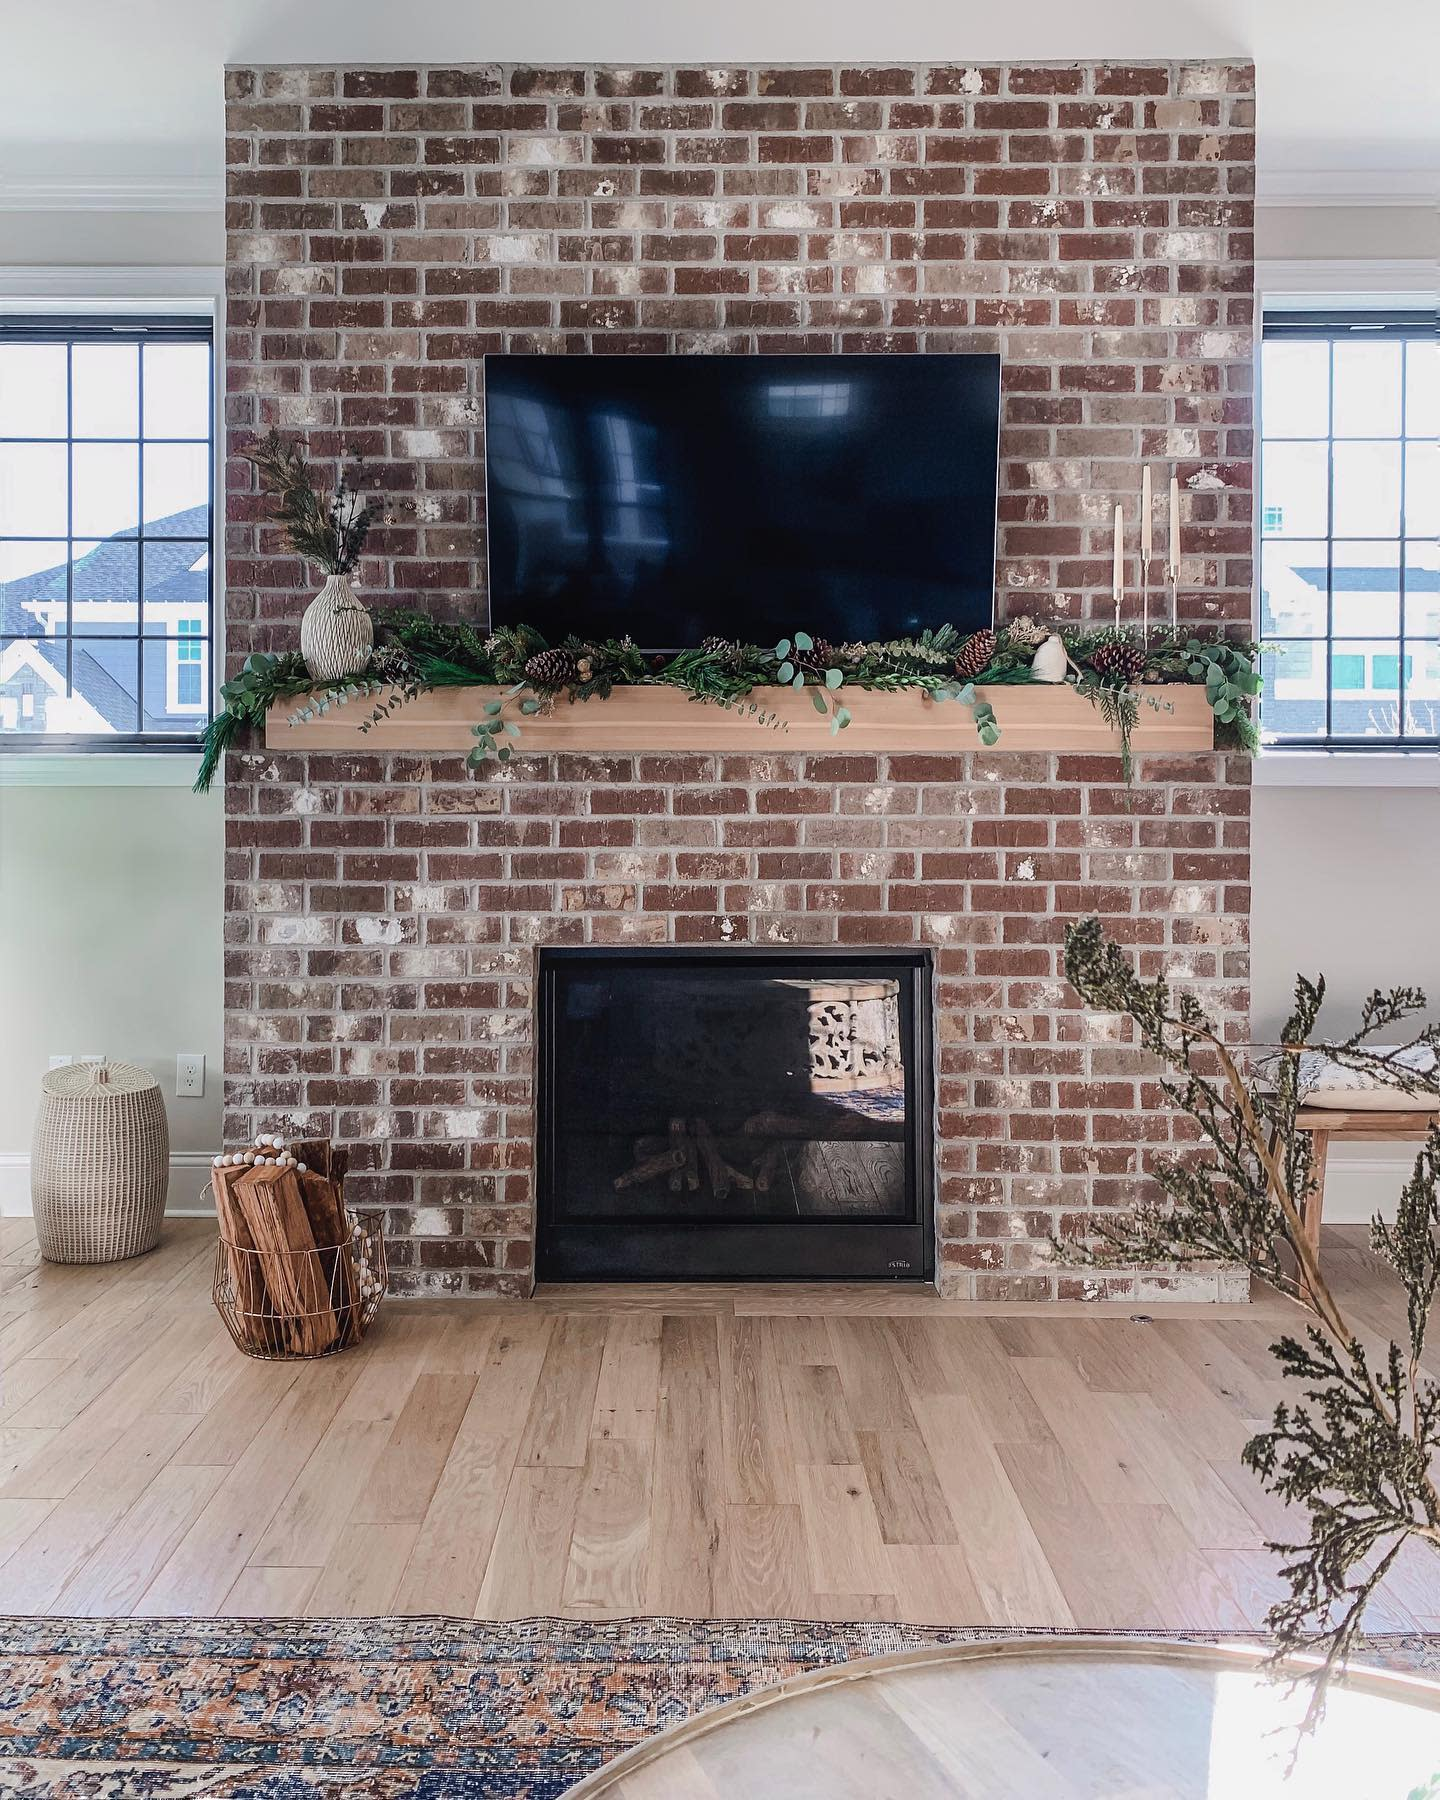 Fireplace Feature Wall Accent Wall Ideas for Living Room -spacefordreaming